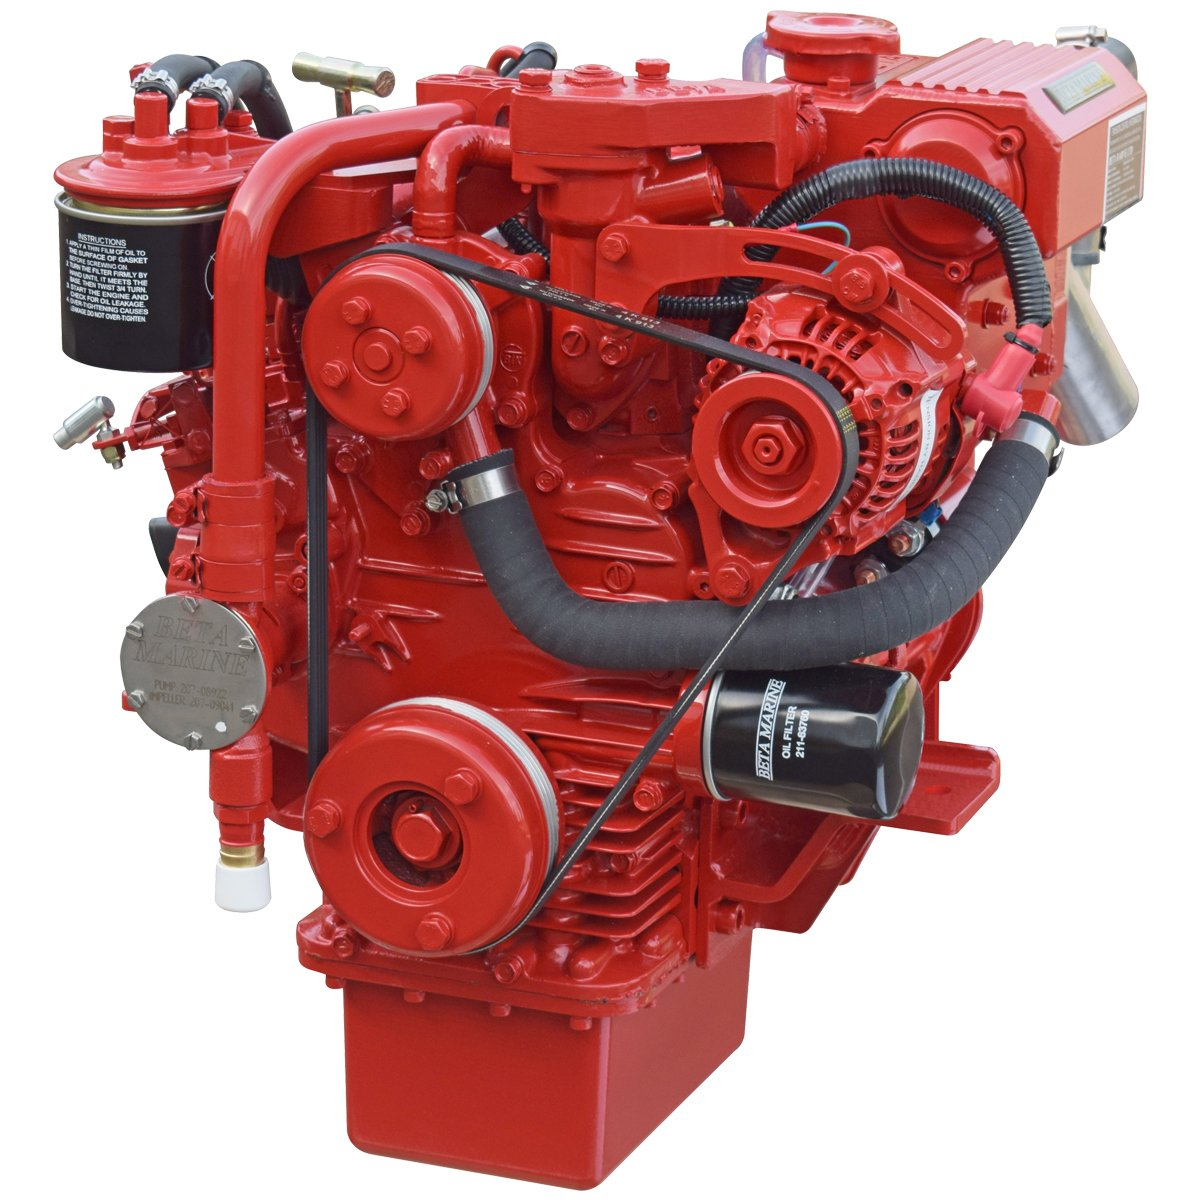 Beta Marine USA - marine diesel saildrive engines - Beta 16SD heat exchanger saildrive engine